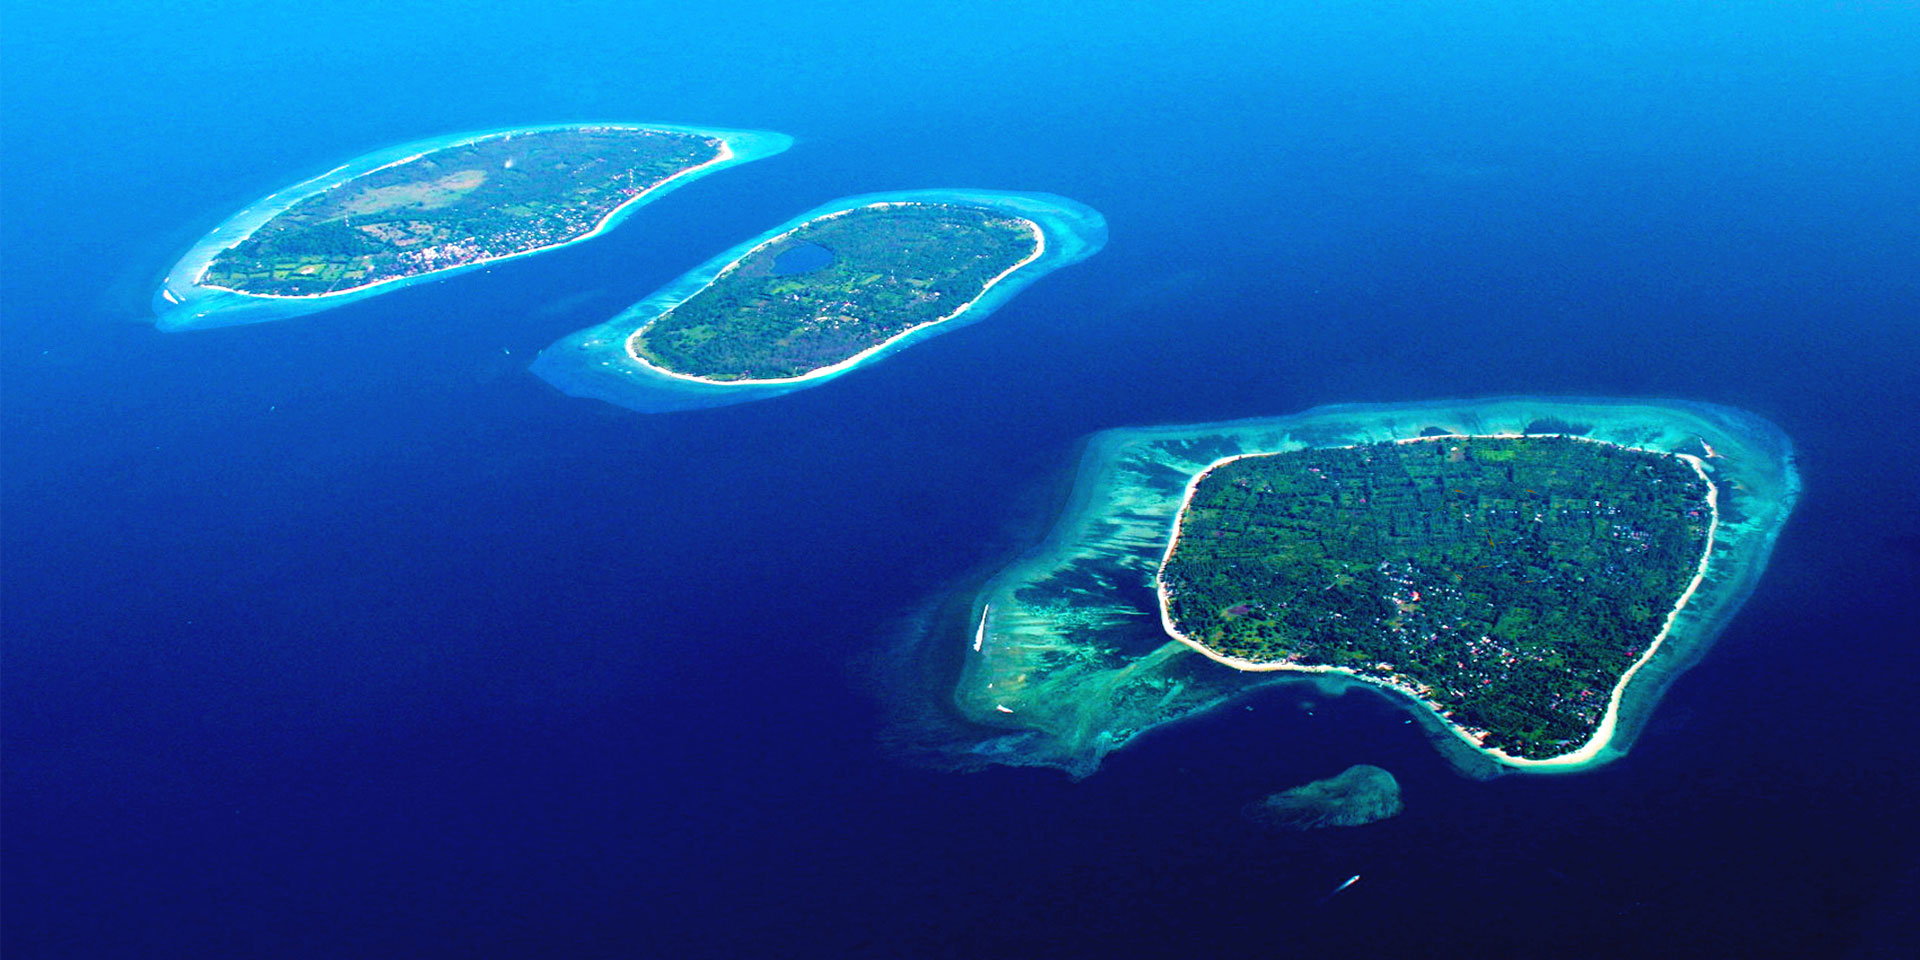 The 3 Gili Islands, Gili Trawangan, Gili Meno and Gili Air